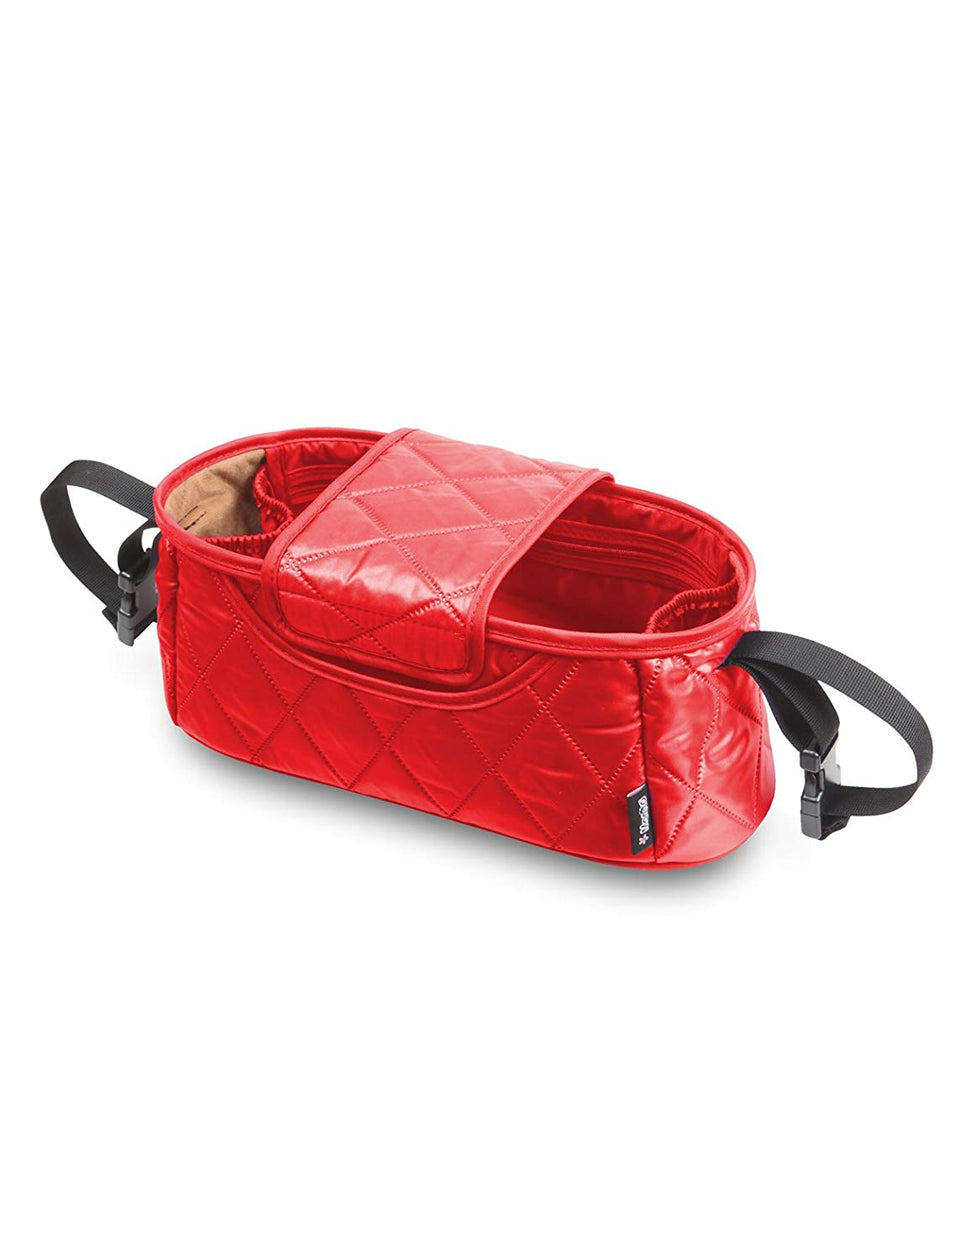 Handy Stroller Organizer (Red/Diamond)